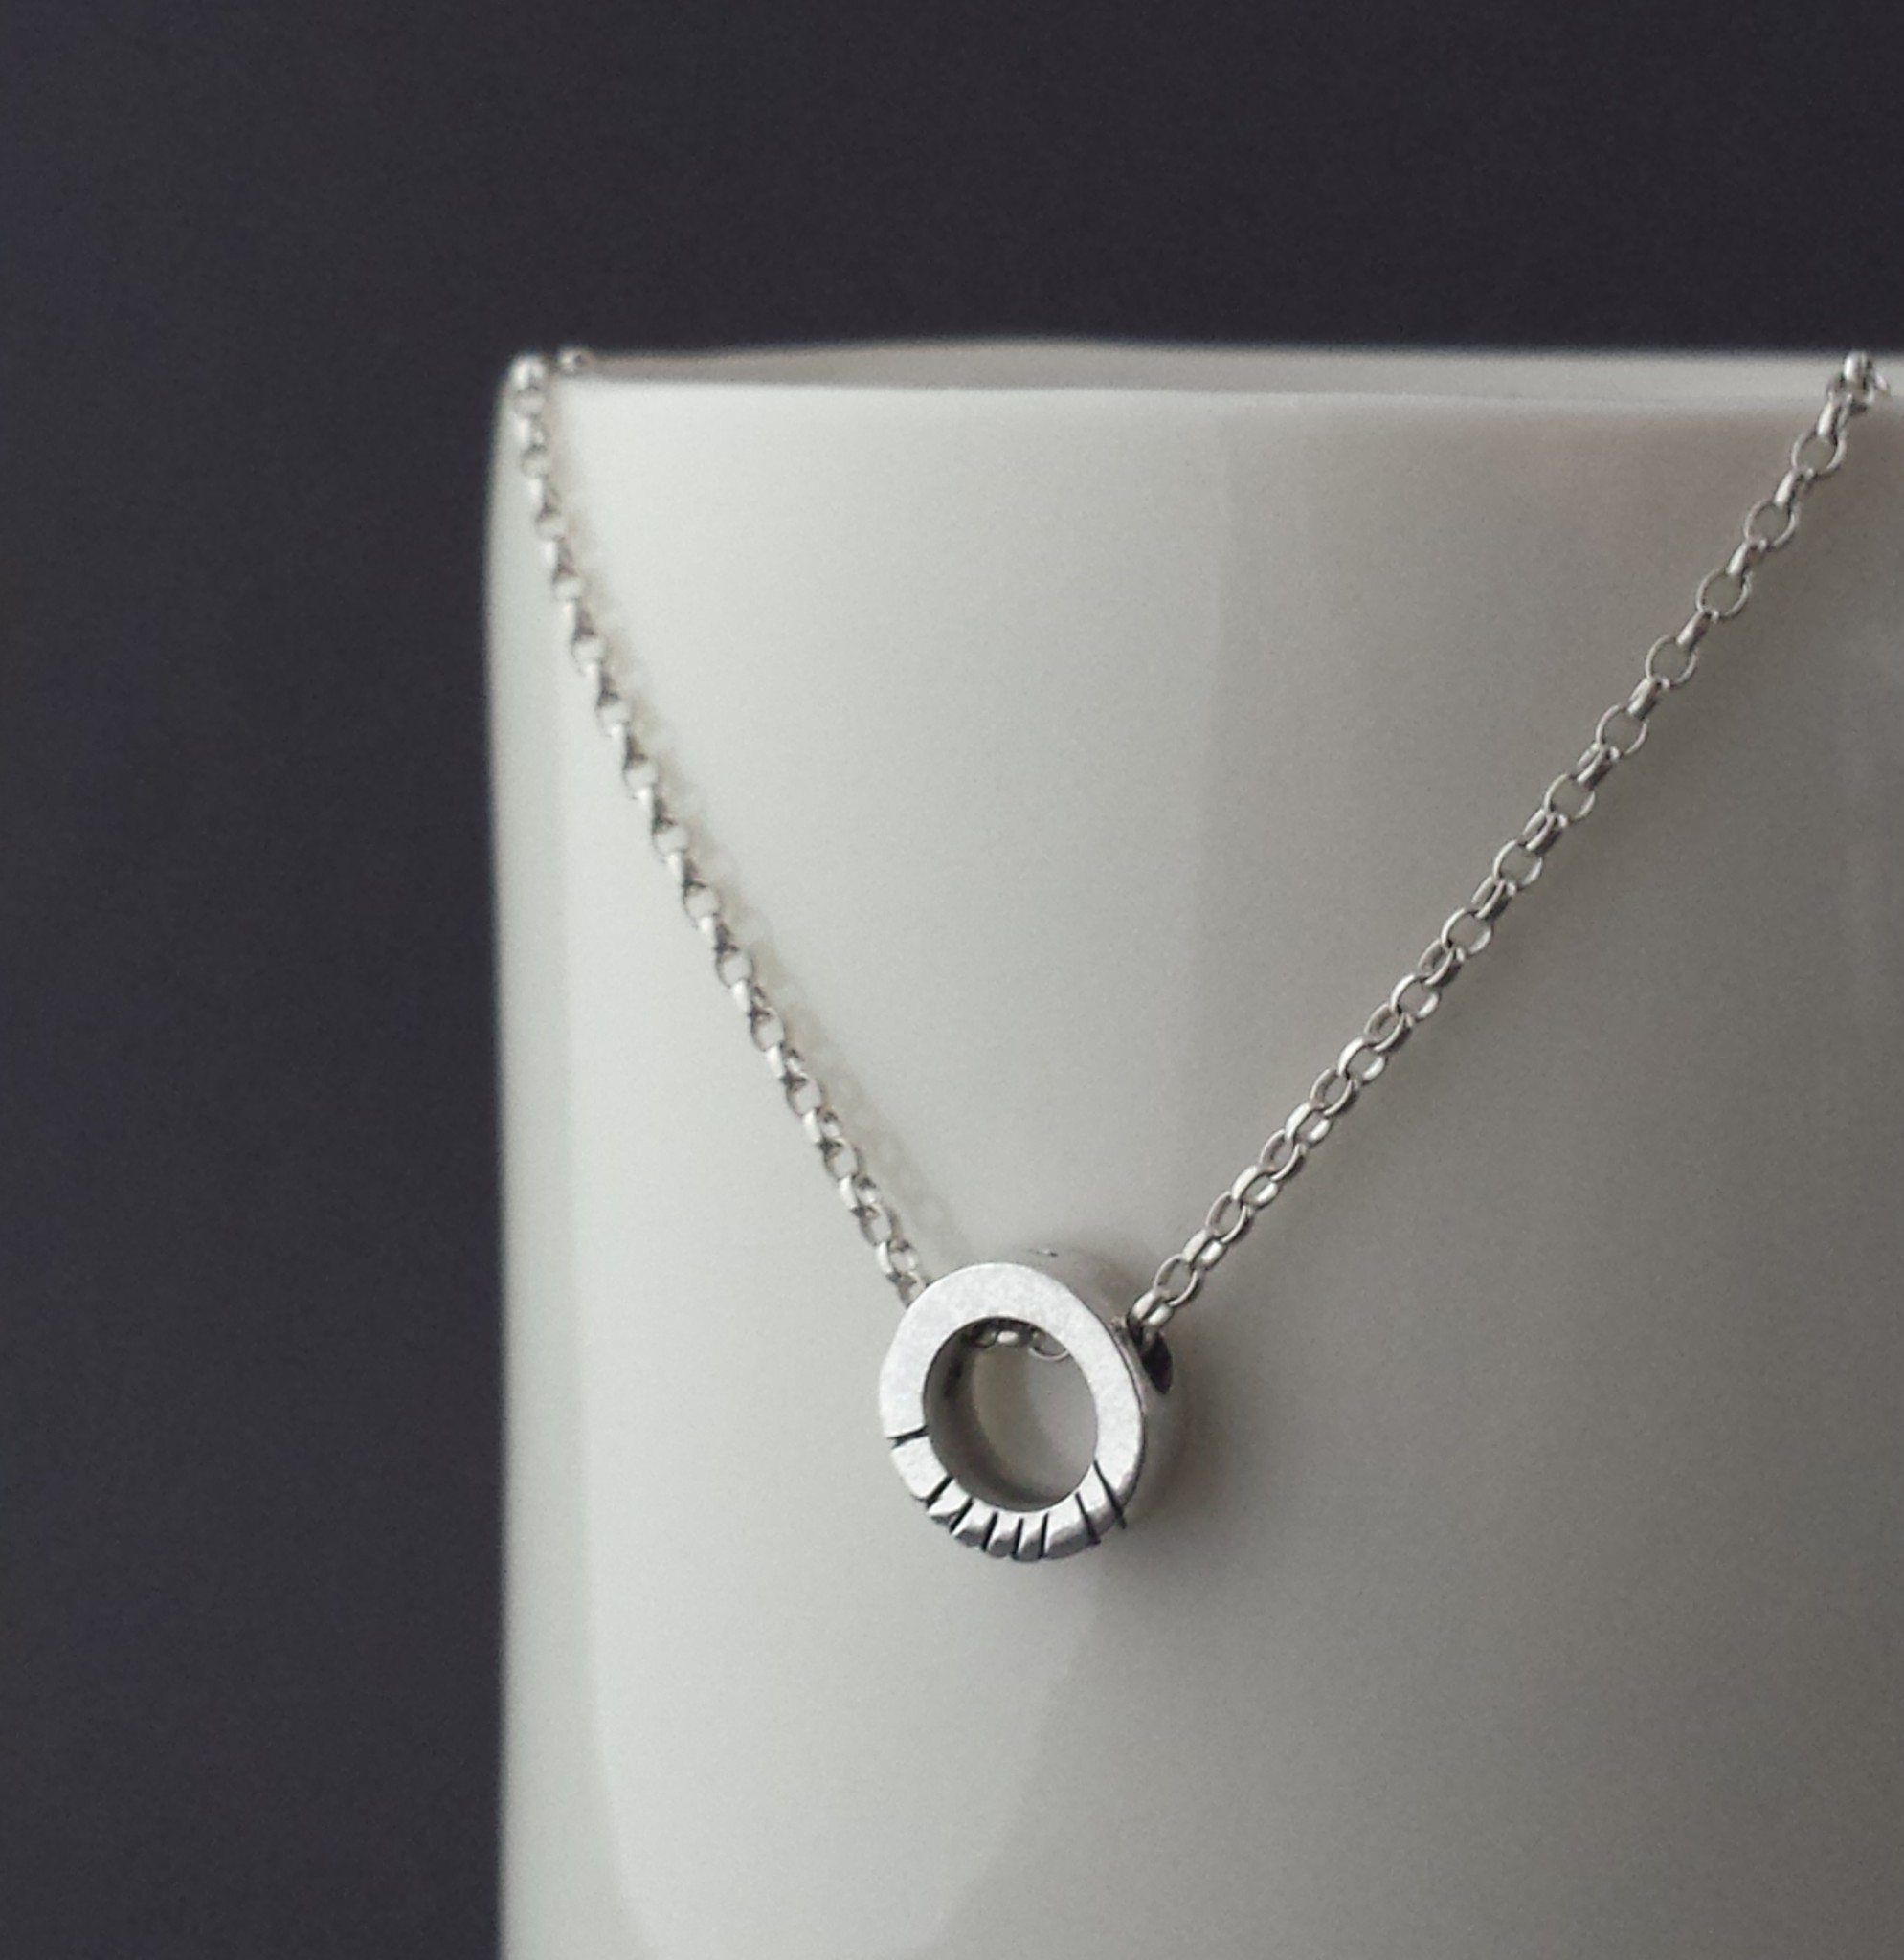 Personalized ogham pendant ogham pinterest made by hand in our irish silversmith workshop personalize your message on an ogham pendant sterling silver ogham pendant is inspired by the oldest form of aloadofball Images